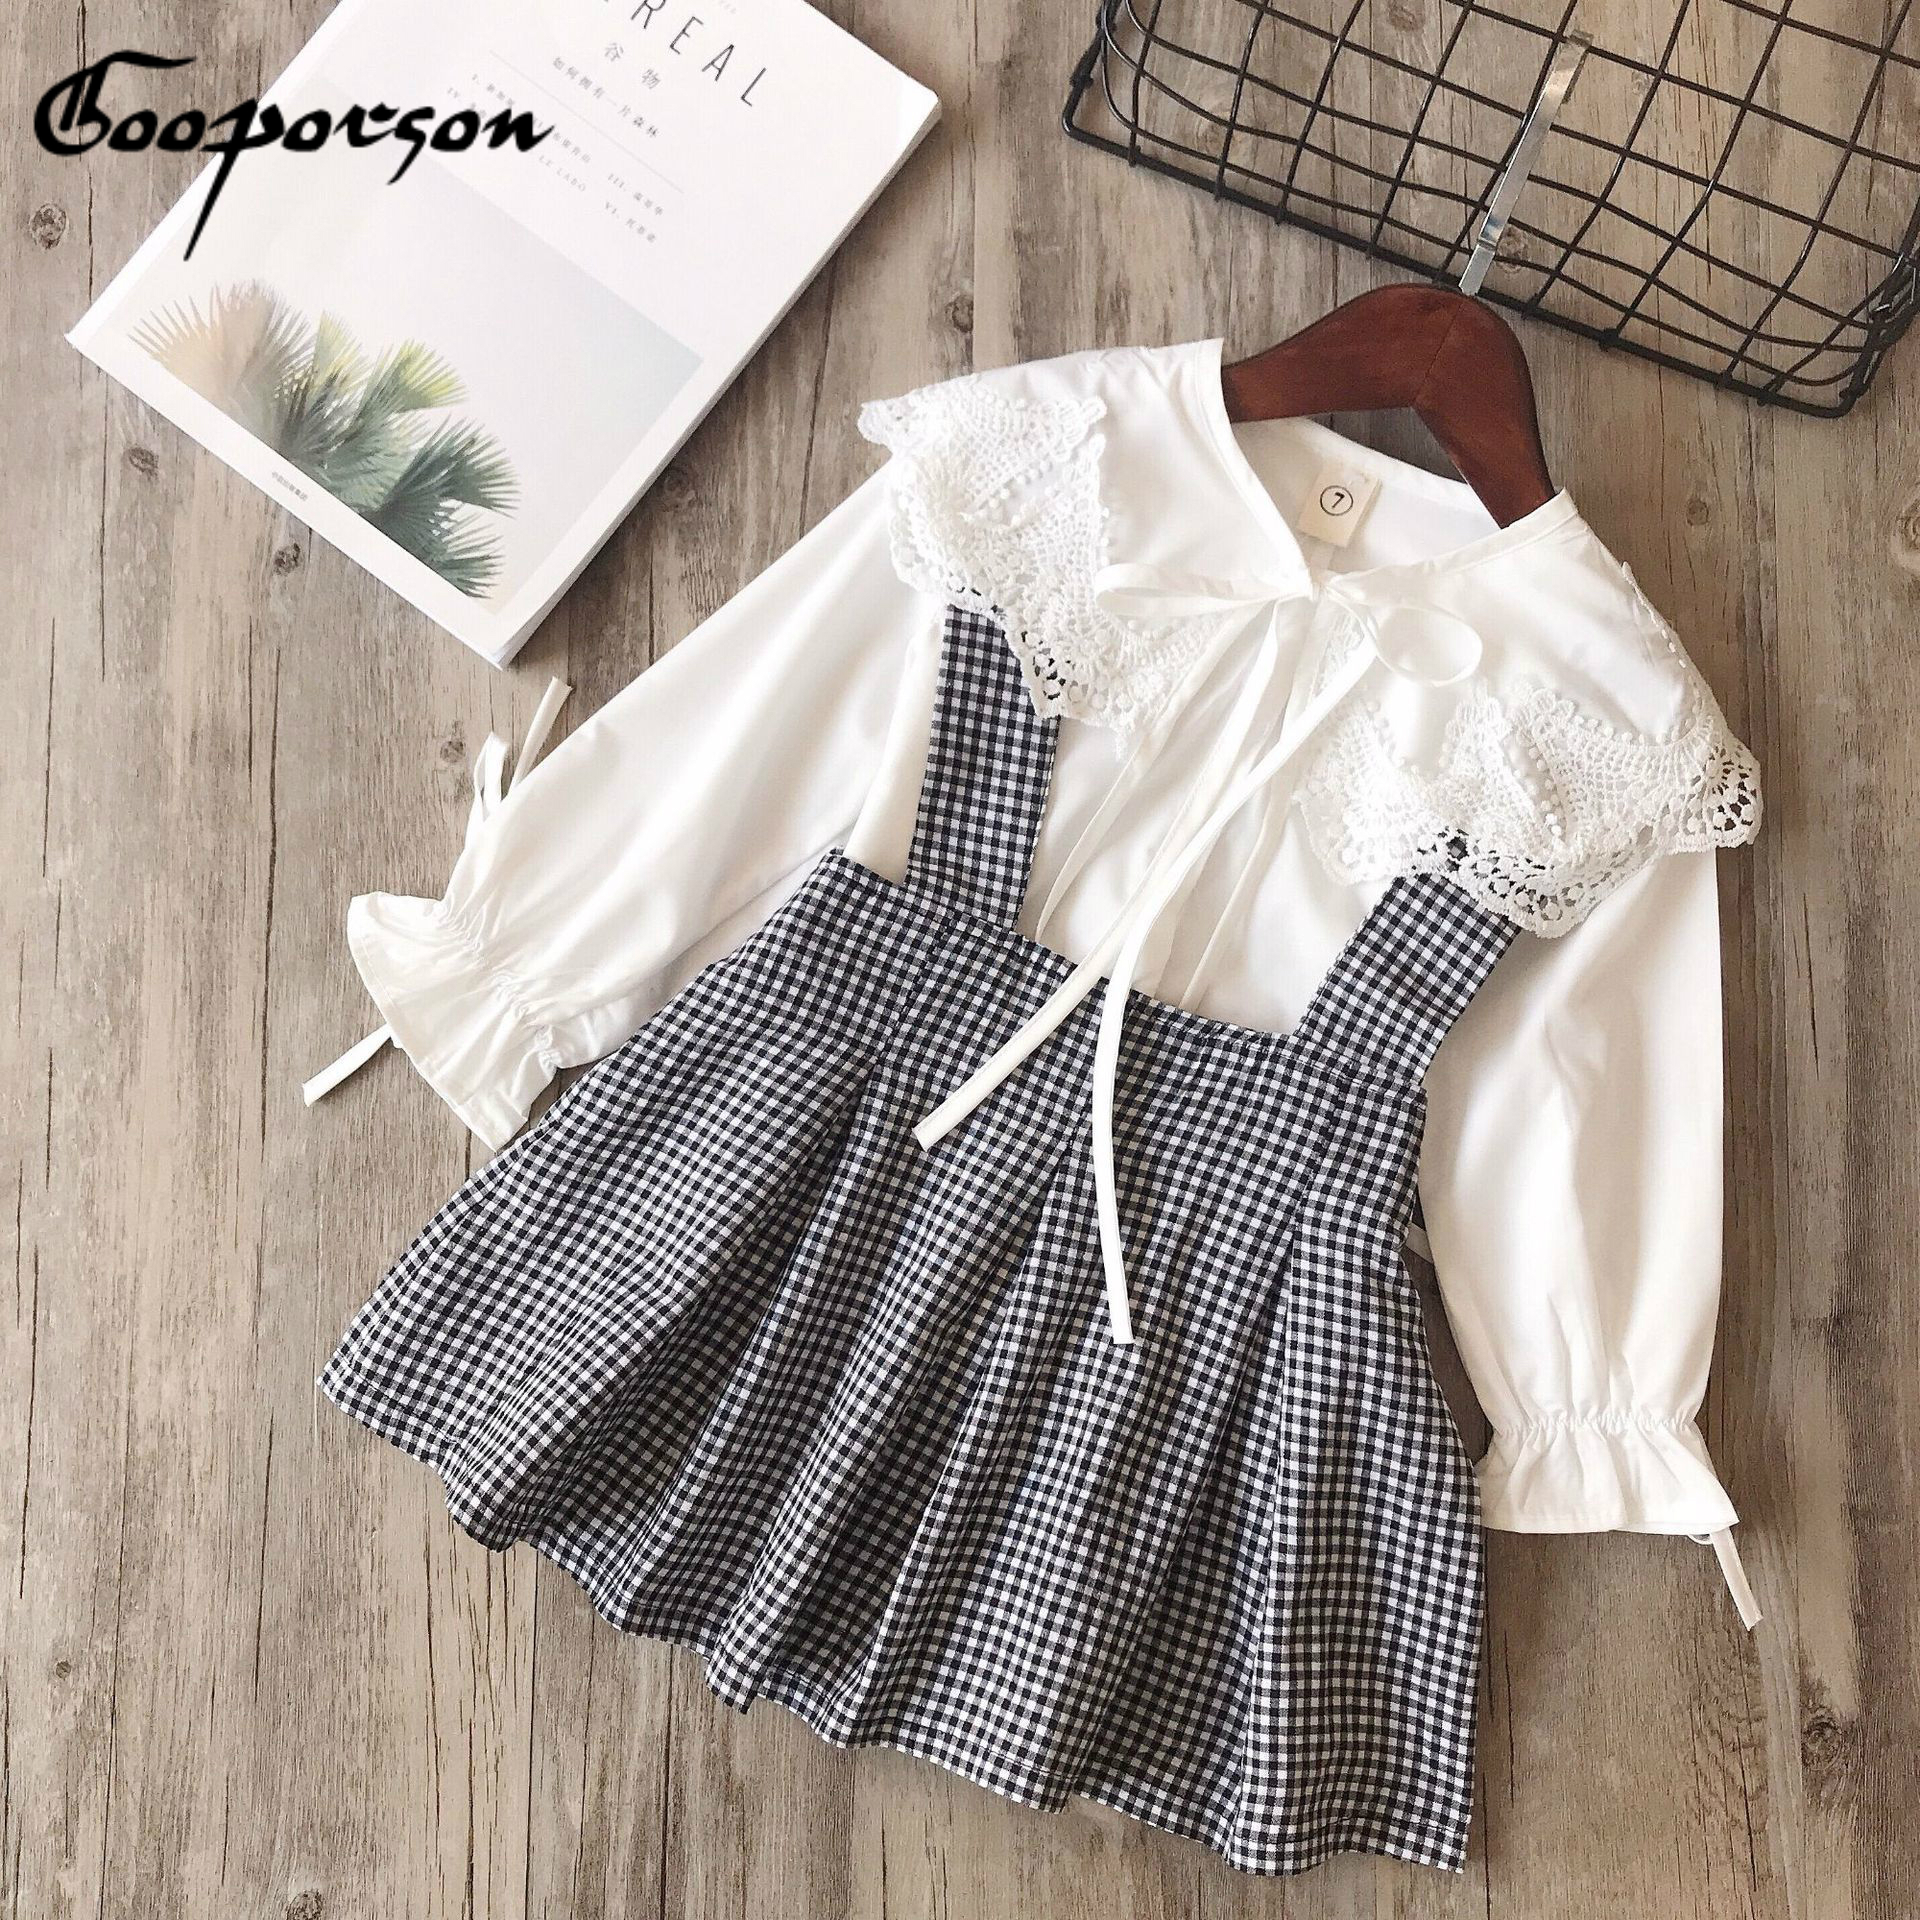 Christmas Baby Girls Outfit Set Cute Long Sleeves Ruffle Sleeves Shirt Solid Top+Floral Embroidery Overalls Skirt Set